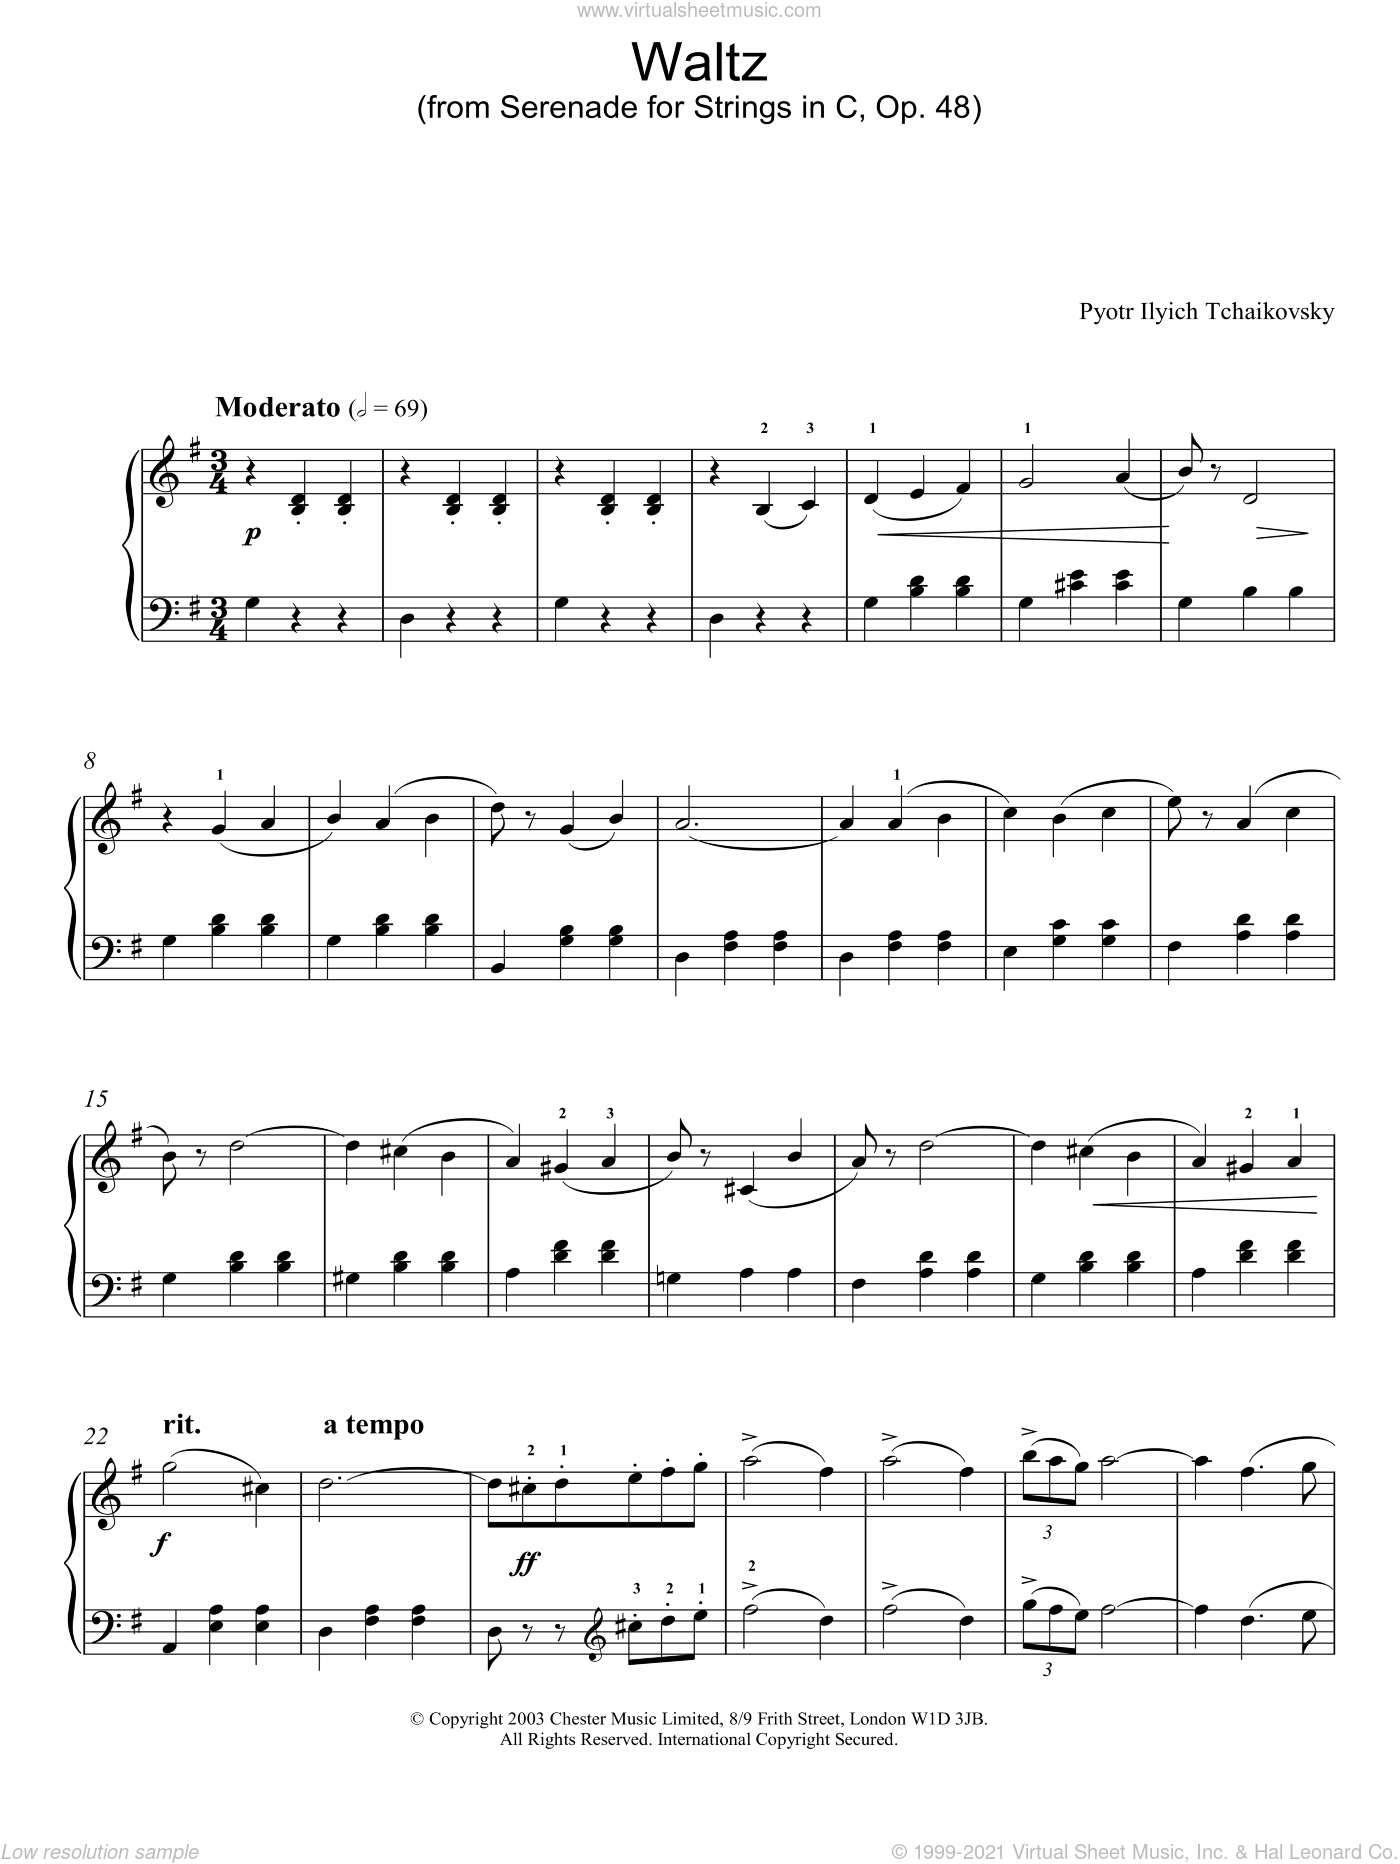 Waltz (from Serenade for Strings In C, Op. 48) sheet music for piano solo by Pyotr Ilyich Tchaikovsky, classical score, intermediate skill level